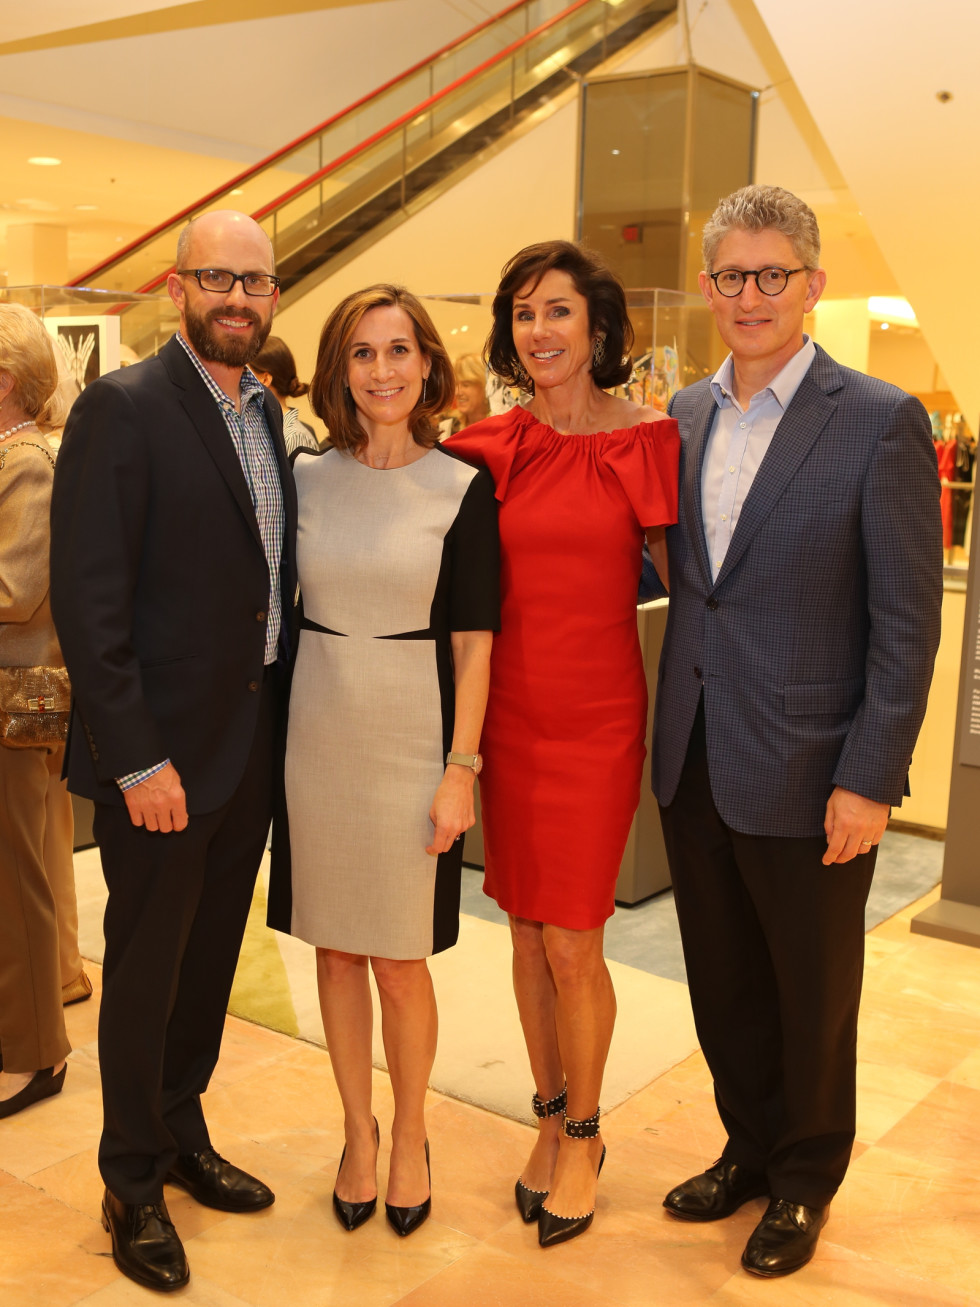 Holocaust Museum Houston Butterfly Project, March 2016, Christopher Tribble, Julie Kinzelman, Heidi Gerger (Board Member), David Gerger